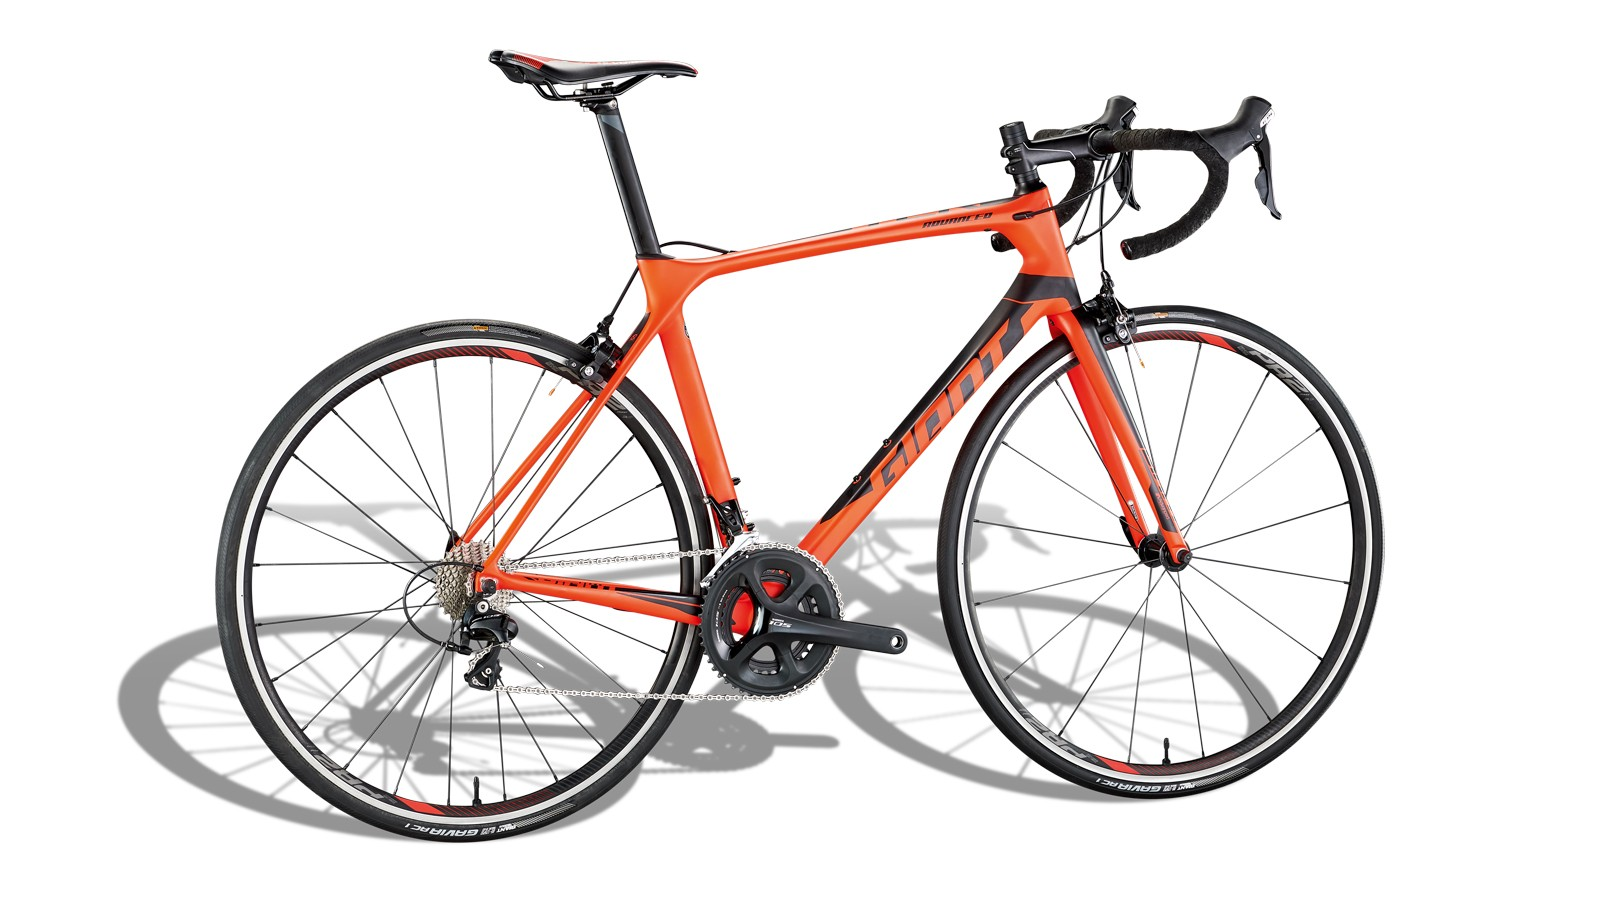 Giant's TCR Advanced 2 is BikeRadar's 2018 Road Bike of the Year